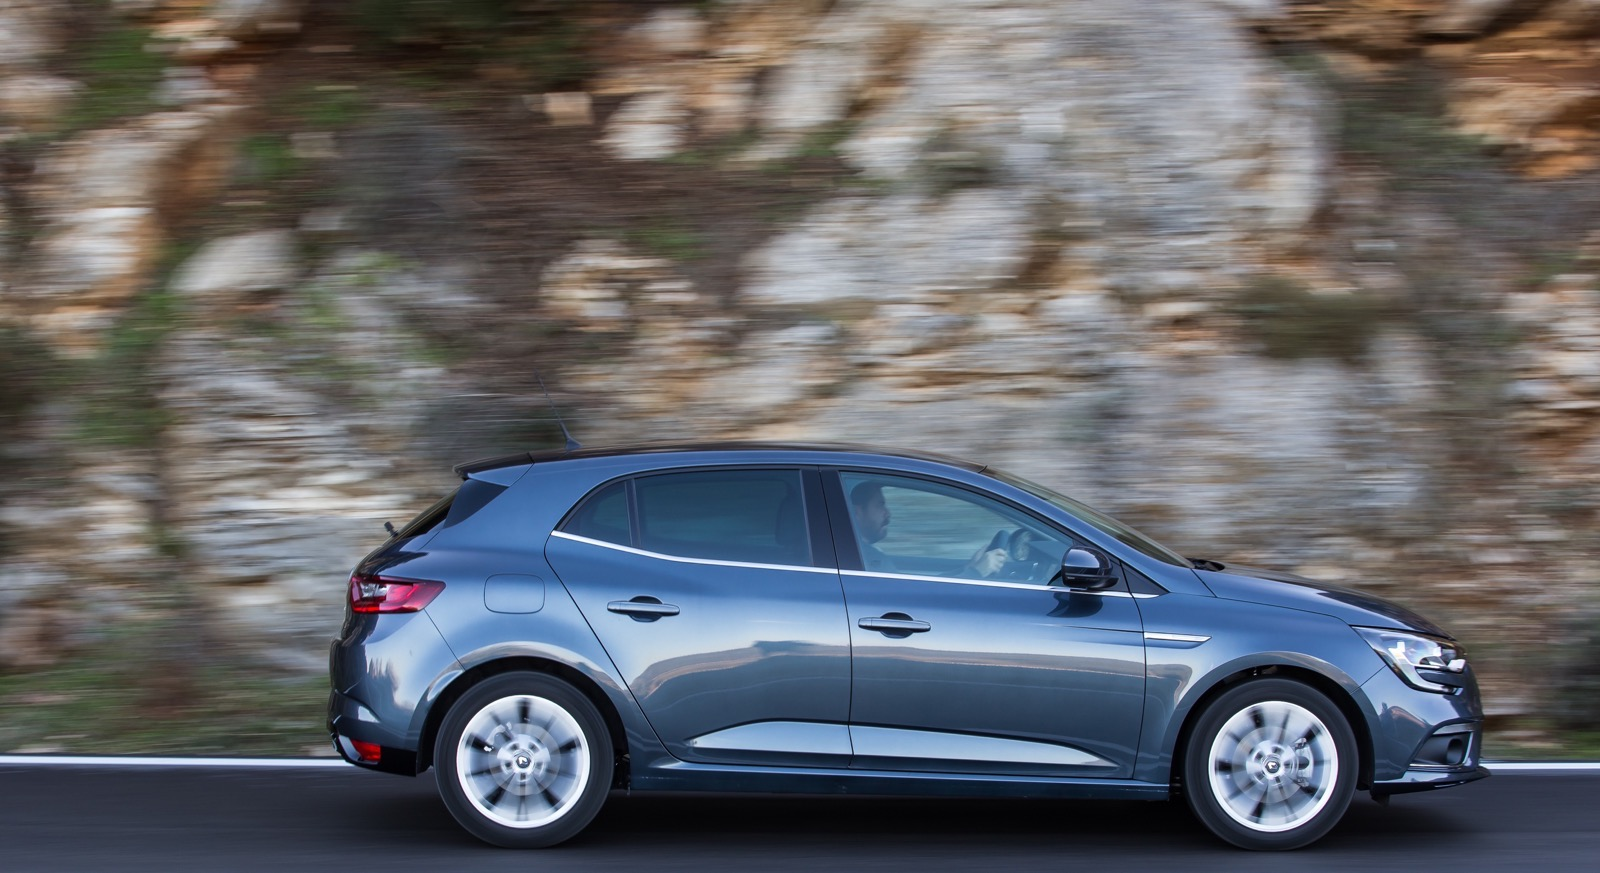 First_Drive_Renault_Megane_74